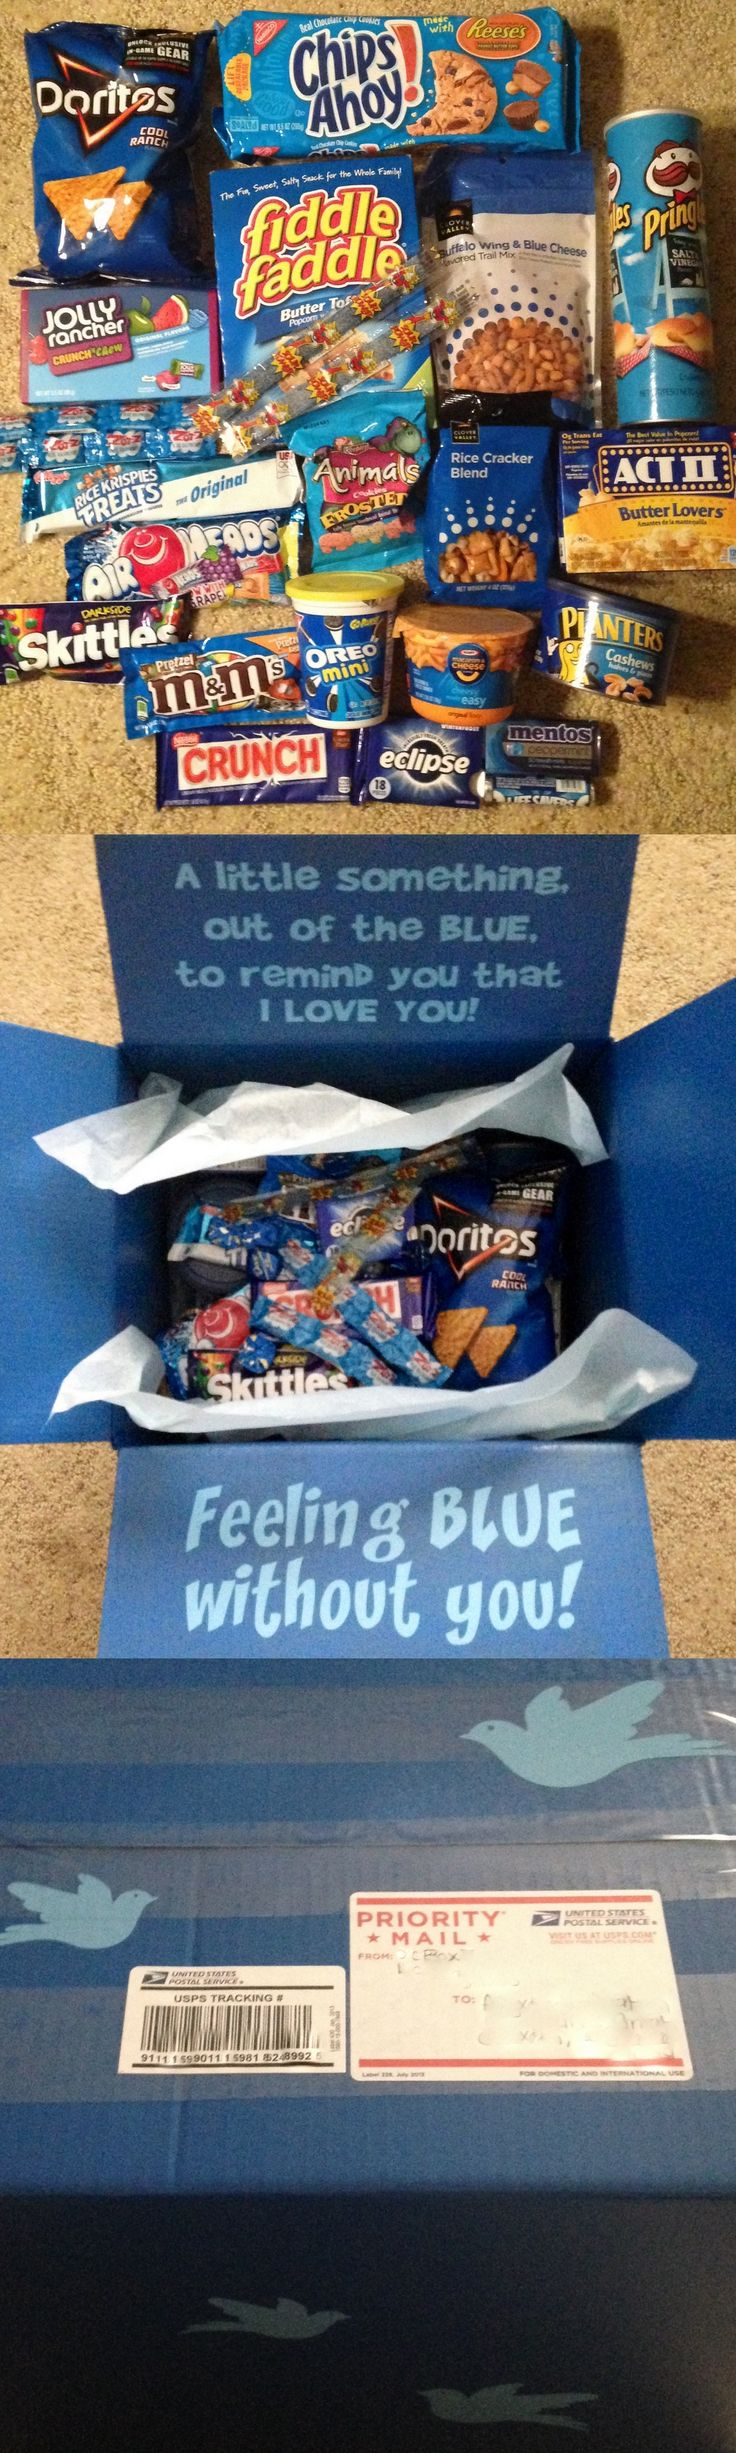 """Out of the Blue"" Care Package  Sent these to my kids at college.  Items included:  BLUE THINGS! :)  Doritos, Chips Ahoy, Pringles, Fiddle Faddle, Jolly Ranchers, Trail Mix, Zots, Microwave Popcorn, Rice Krispie Treat, Airheads, Skittles, Frosted Animal Crakers, Oreo Minis, Rice Crackers, Nestle Crunch, Eclipse Gum, Mac & Cheese, Mentos, Cashews & Life Savors.  I spray painted the boxes, added lettering to the inside flaps and little birds on the outside of the boxes.  So much fun! :)"